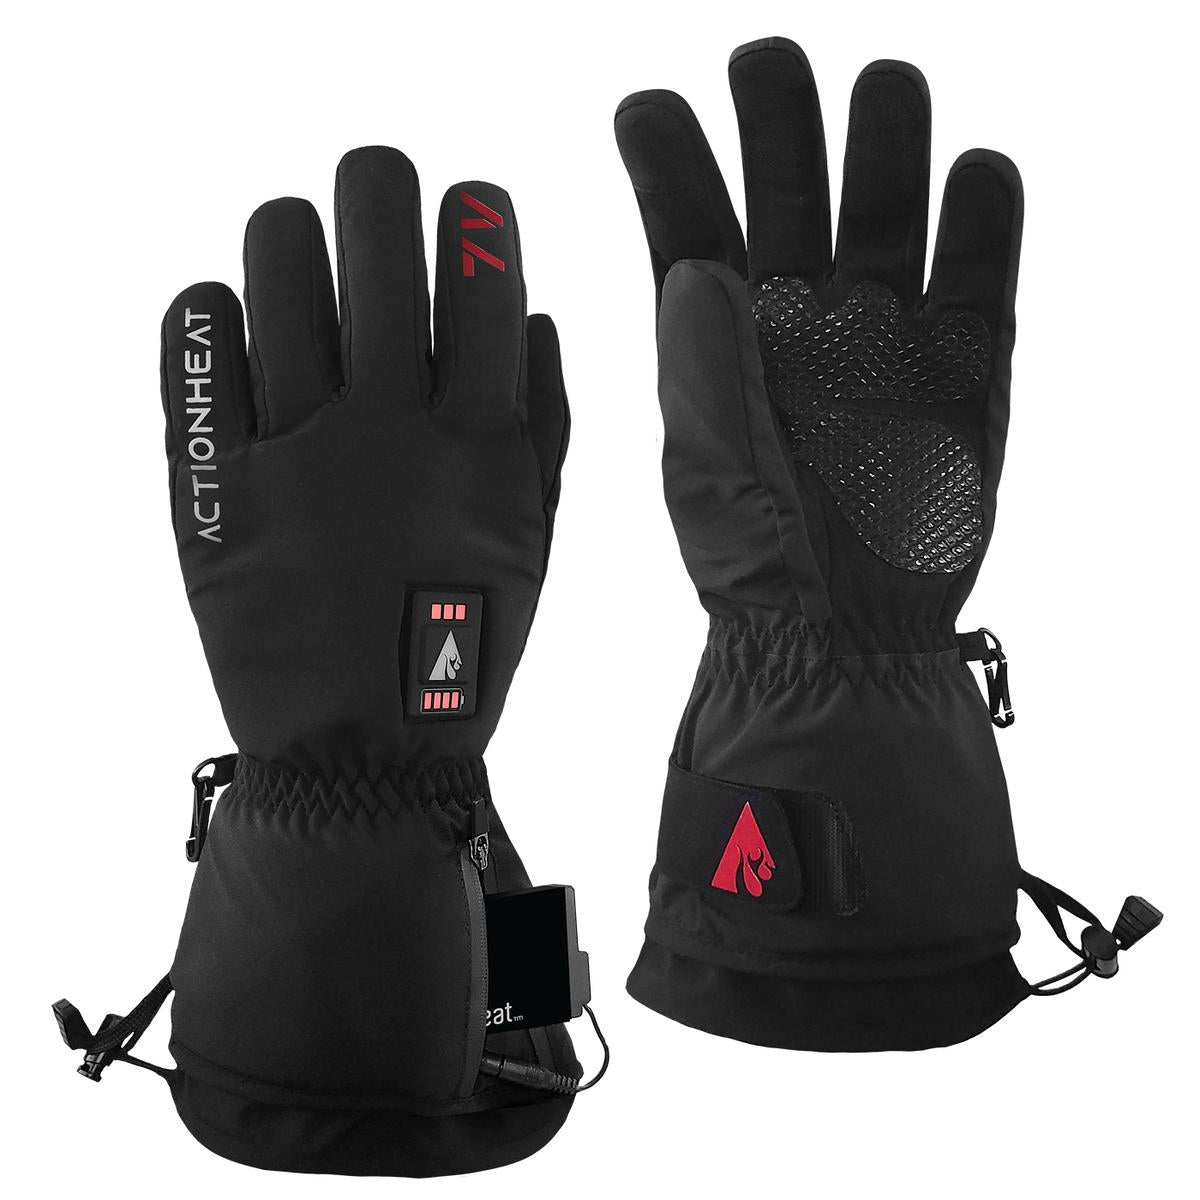 ActionHeat 7V Women's Everyday Heated Gloves - Full Set